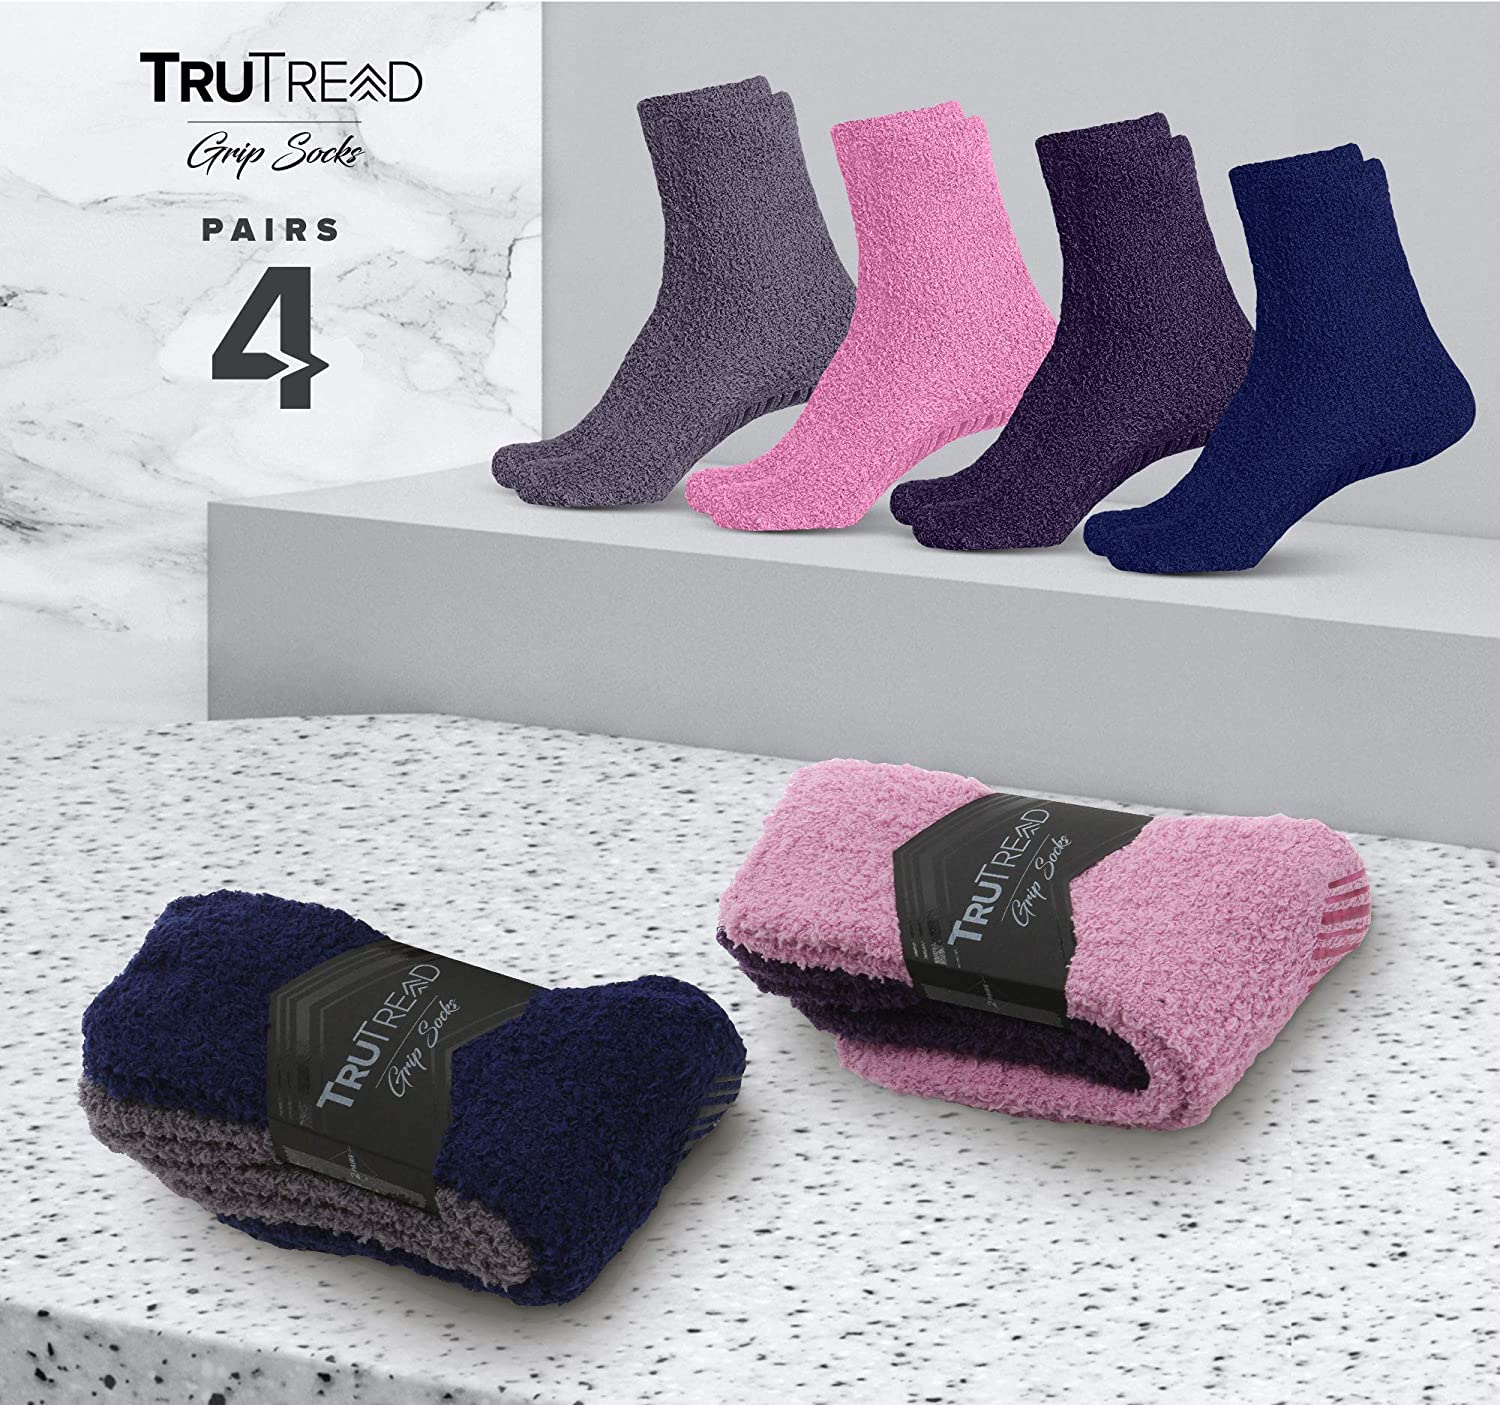 TruTread Fuzzy Socks for Women /& Men 4 Pairs Non Slip//Skid Hospital Crew Socks